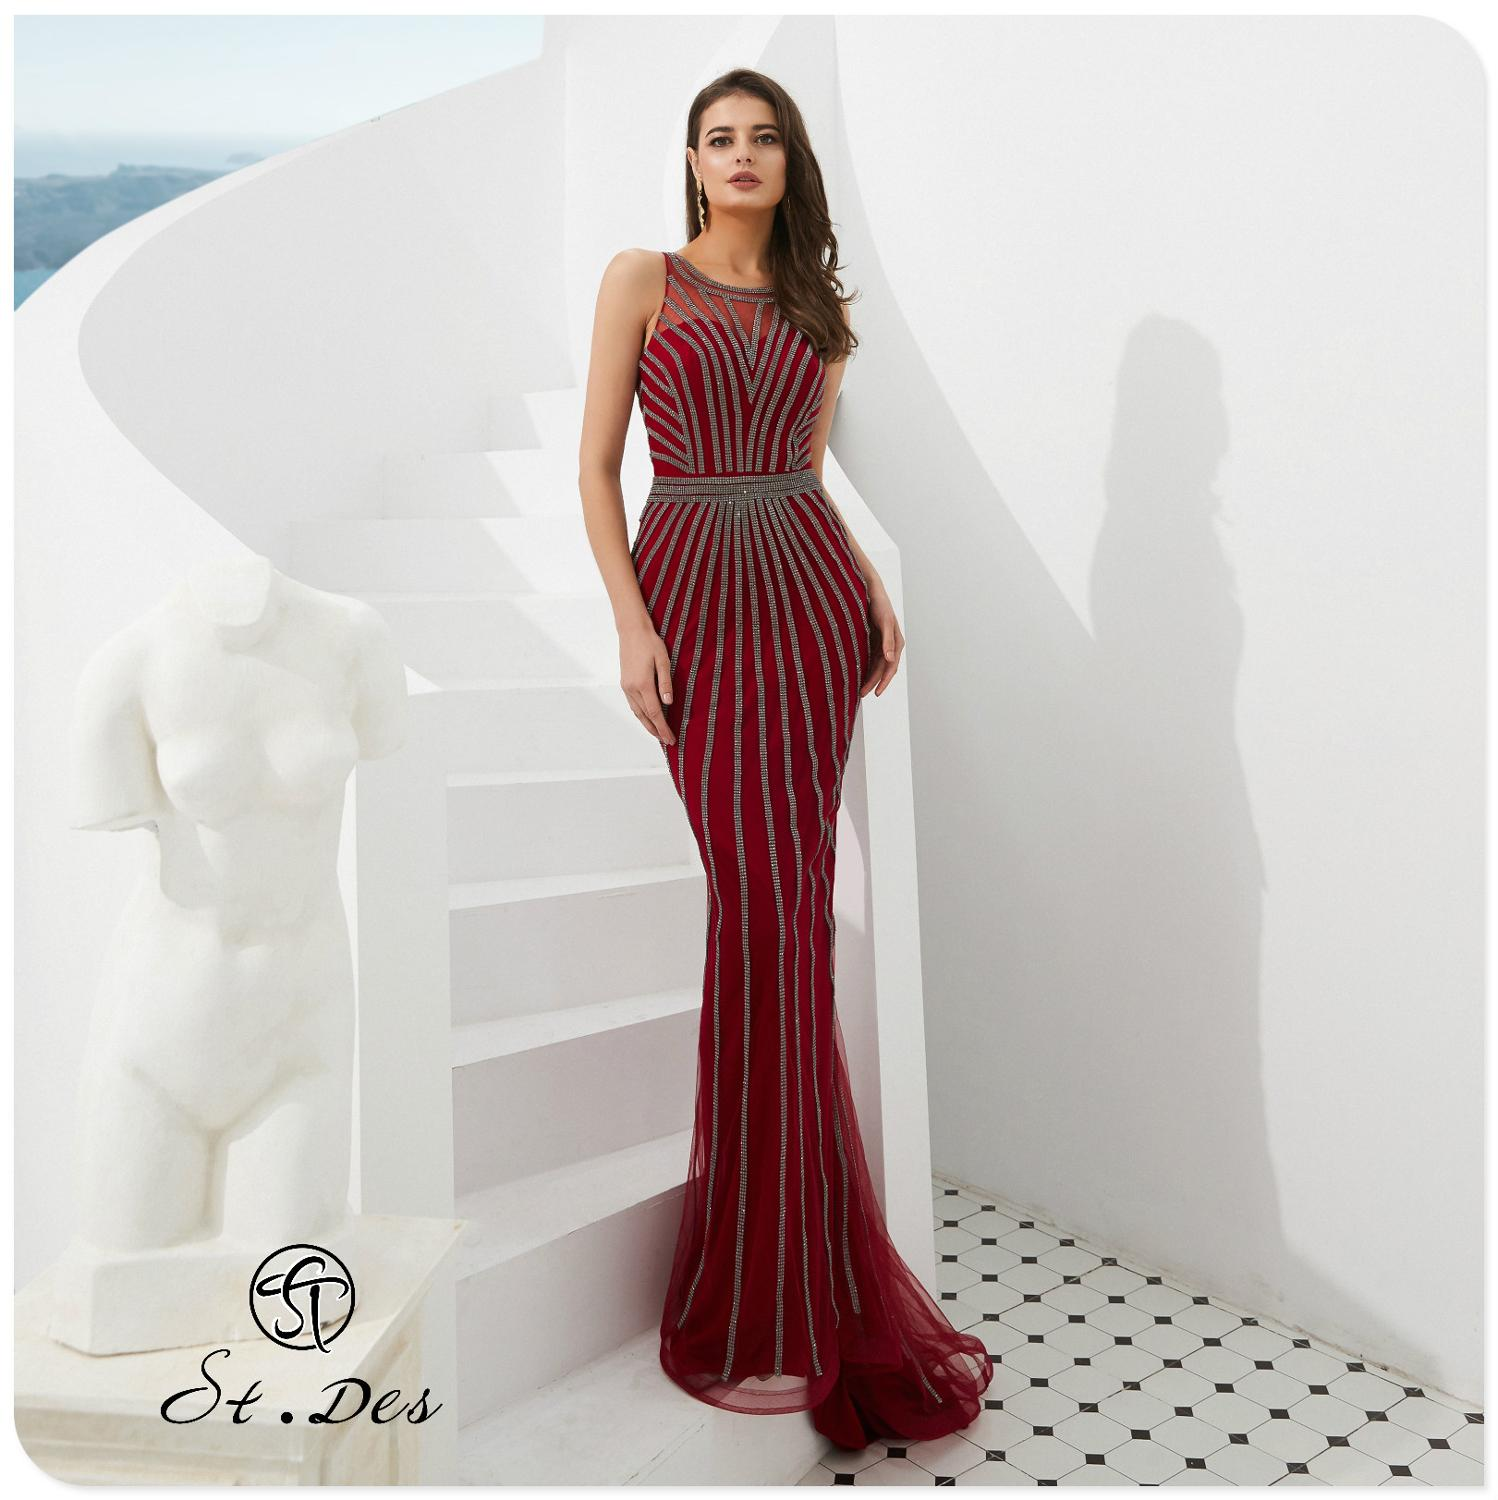 NEW 2020 St.Des Russian Mermaid Round Neck Wine Champagne Sequins Sleeveless Designer Floor Length Evening Dress Party Dress